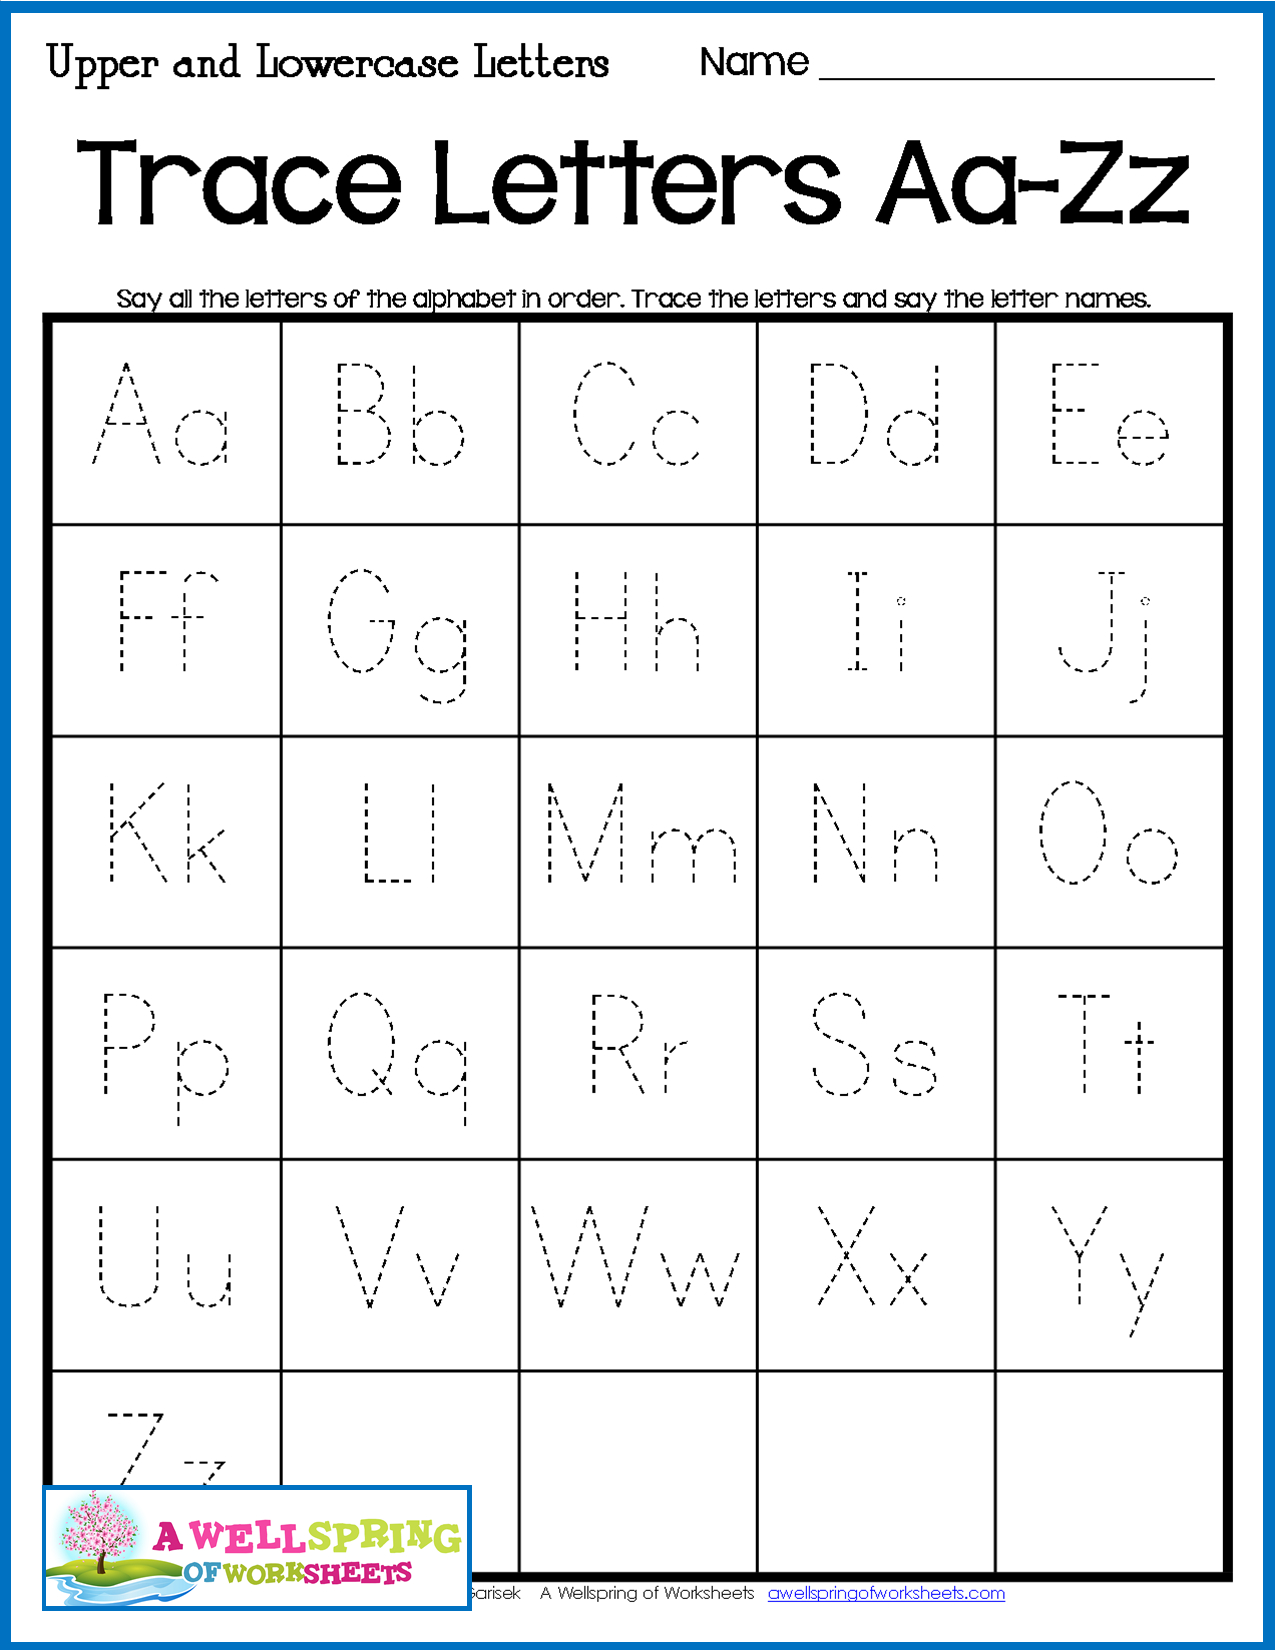 Alphabet Tracing Worksheets - Uppercase & Lowercase Letters throughout Tracing Upper And Lowercase Letters Worksheets